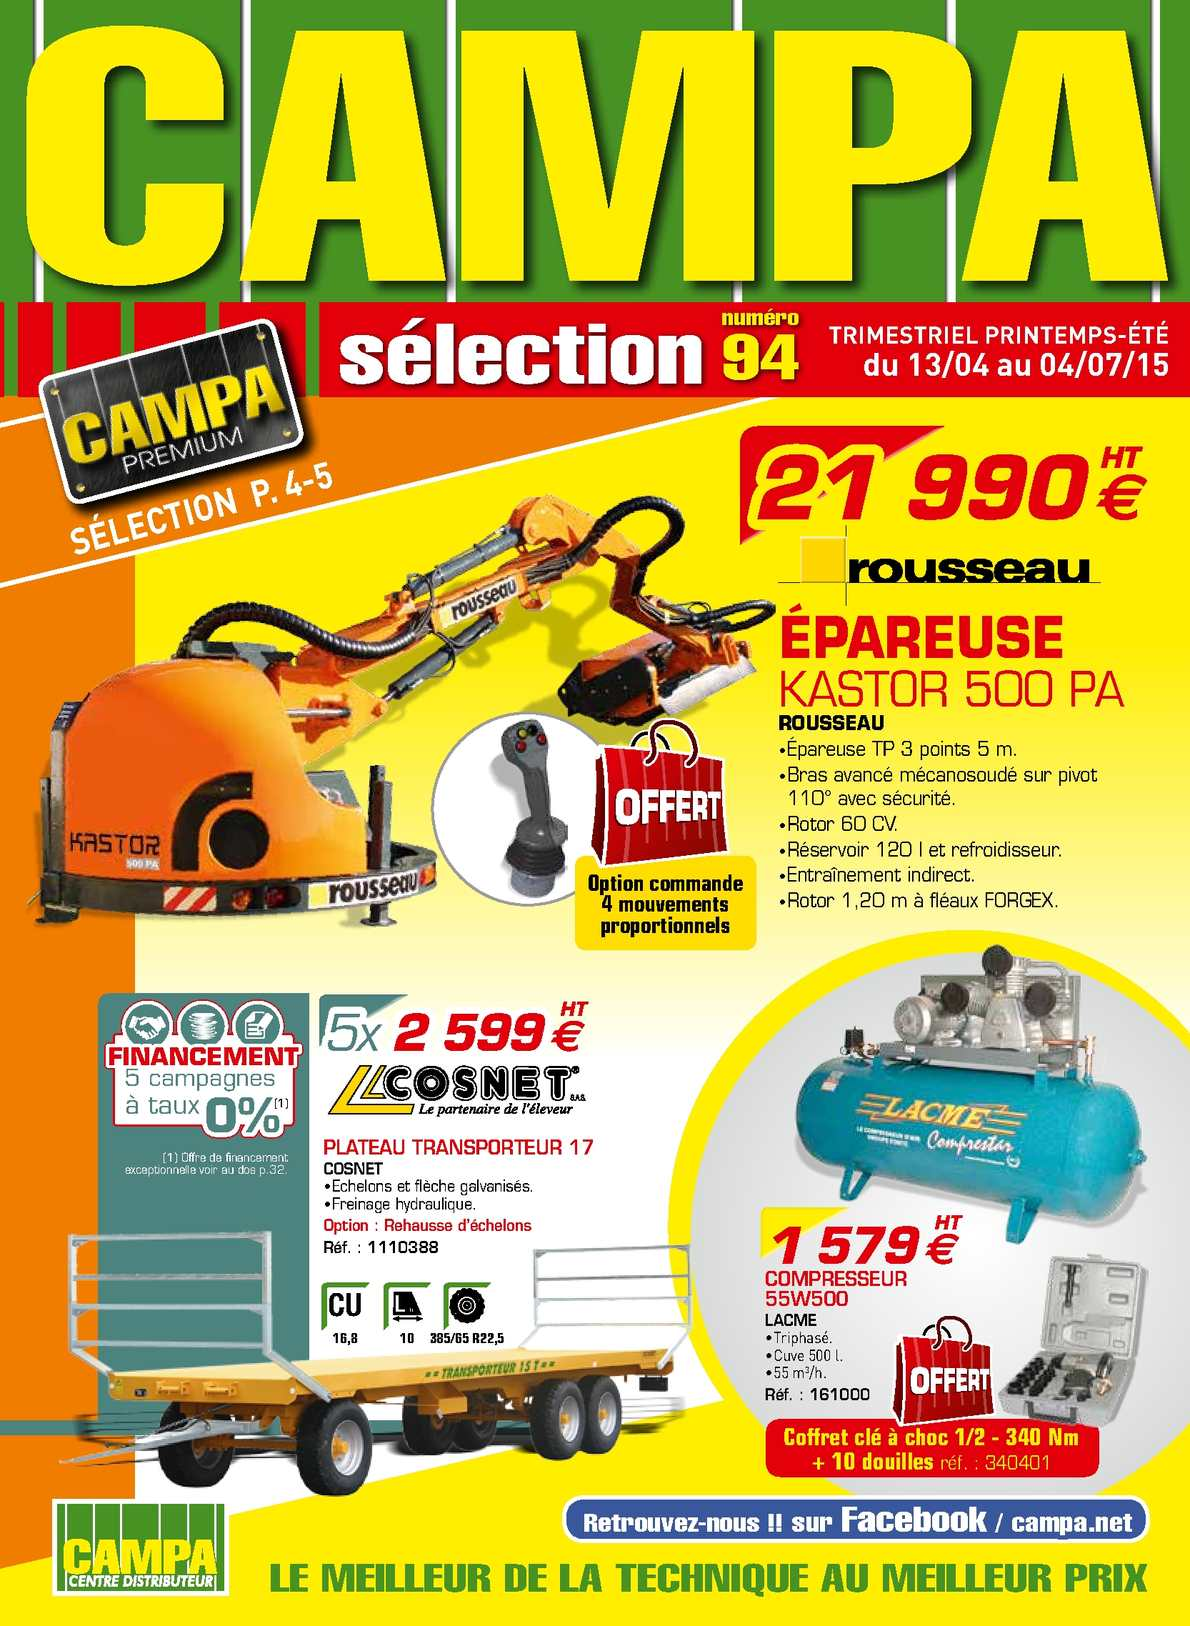 Campa Selection 94